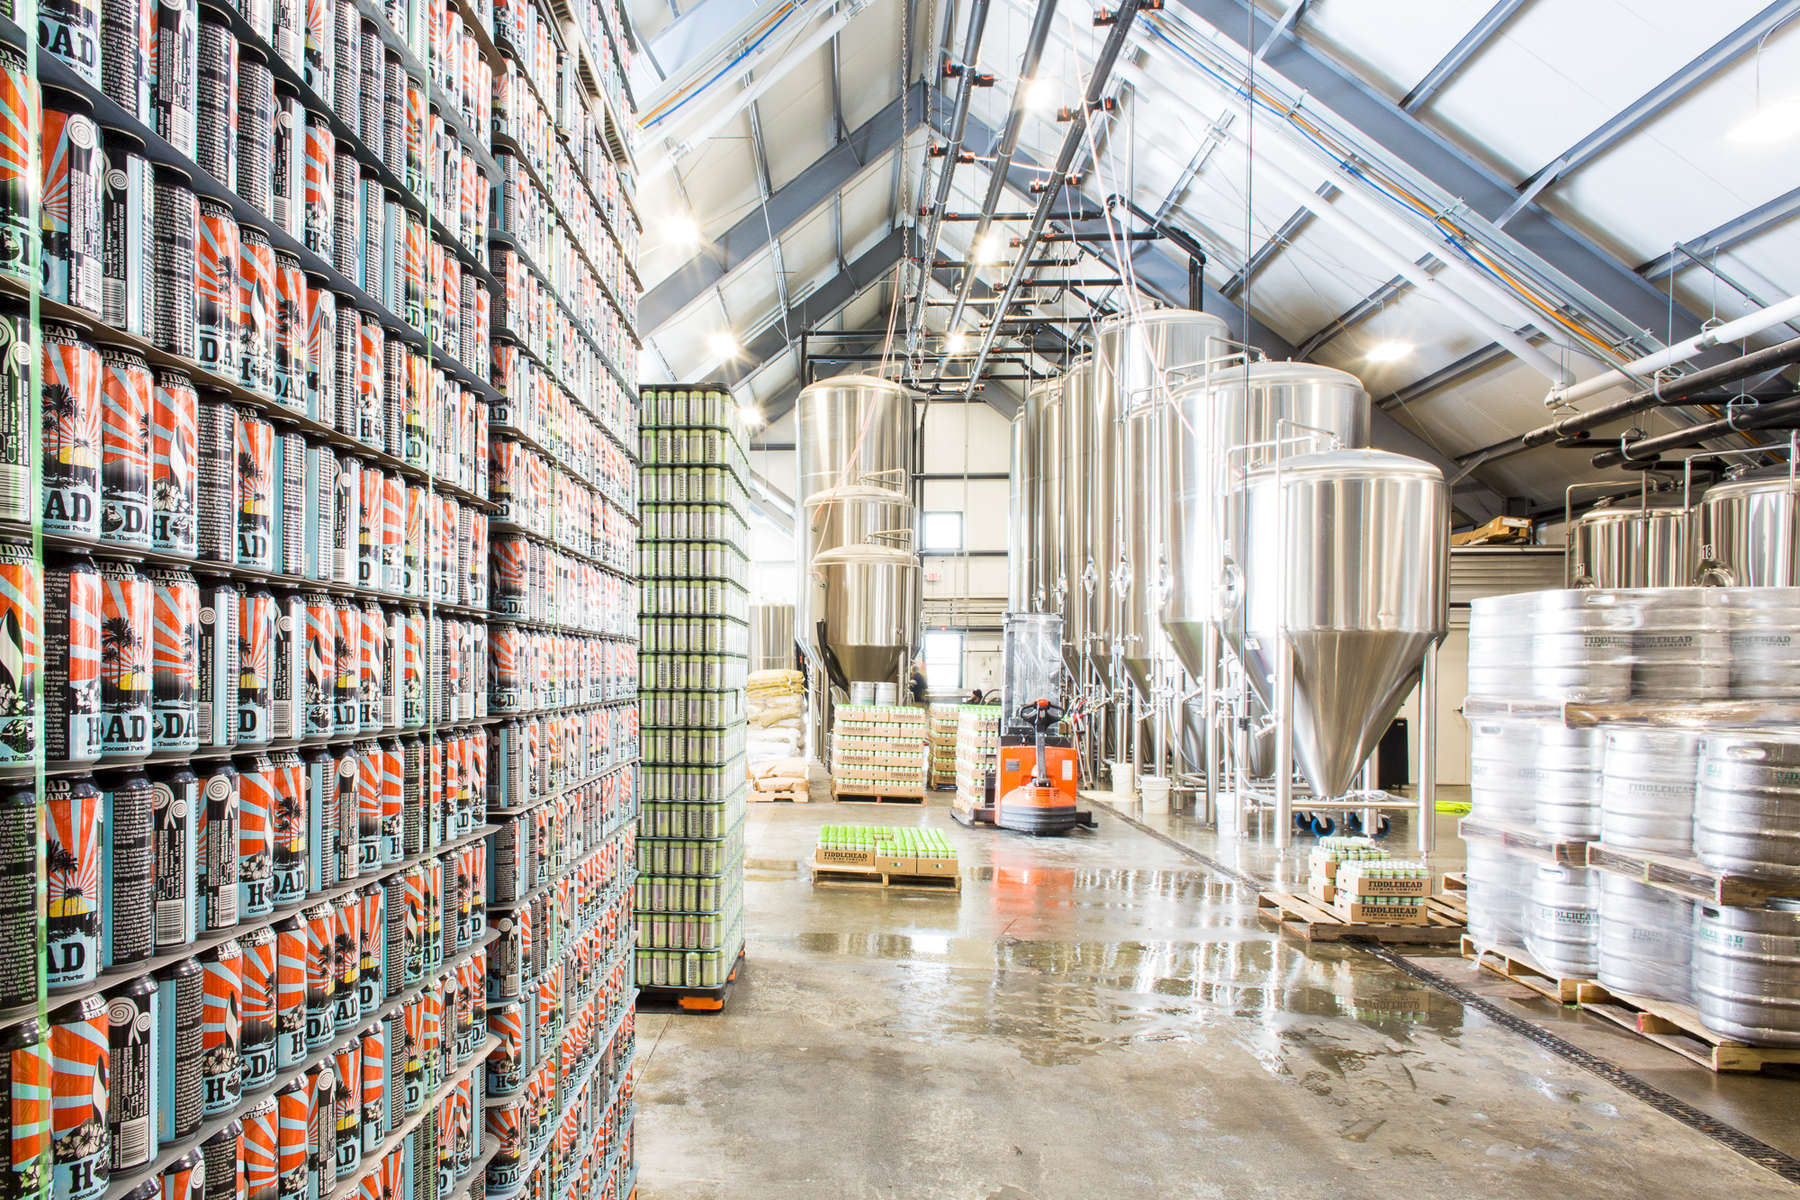 A bright and stunning photo of brewing tanks surrounded by cans of Fiddlehead Brewing Company's Hodad Porter.